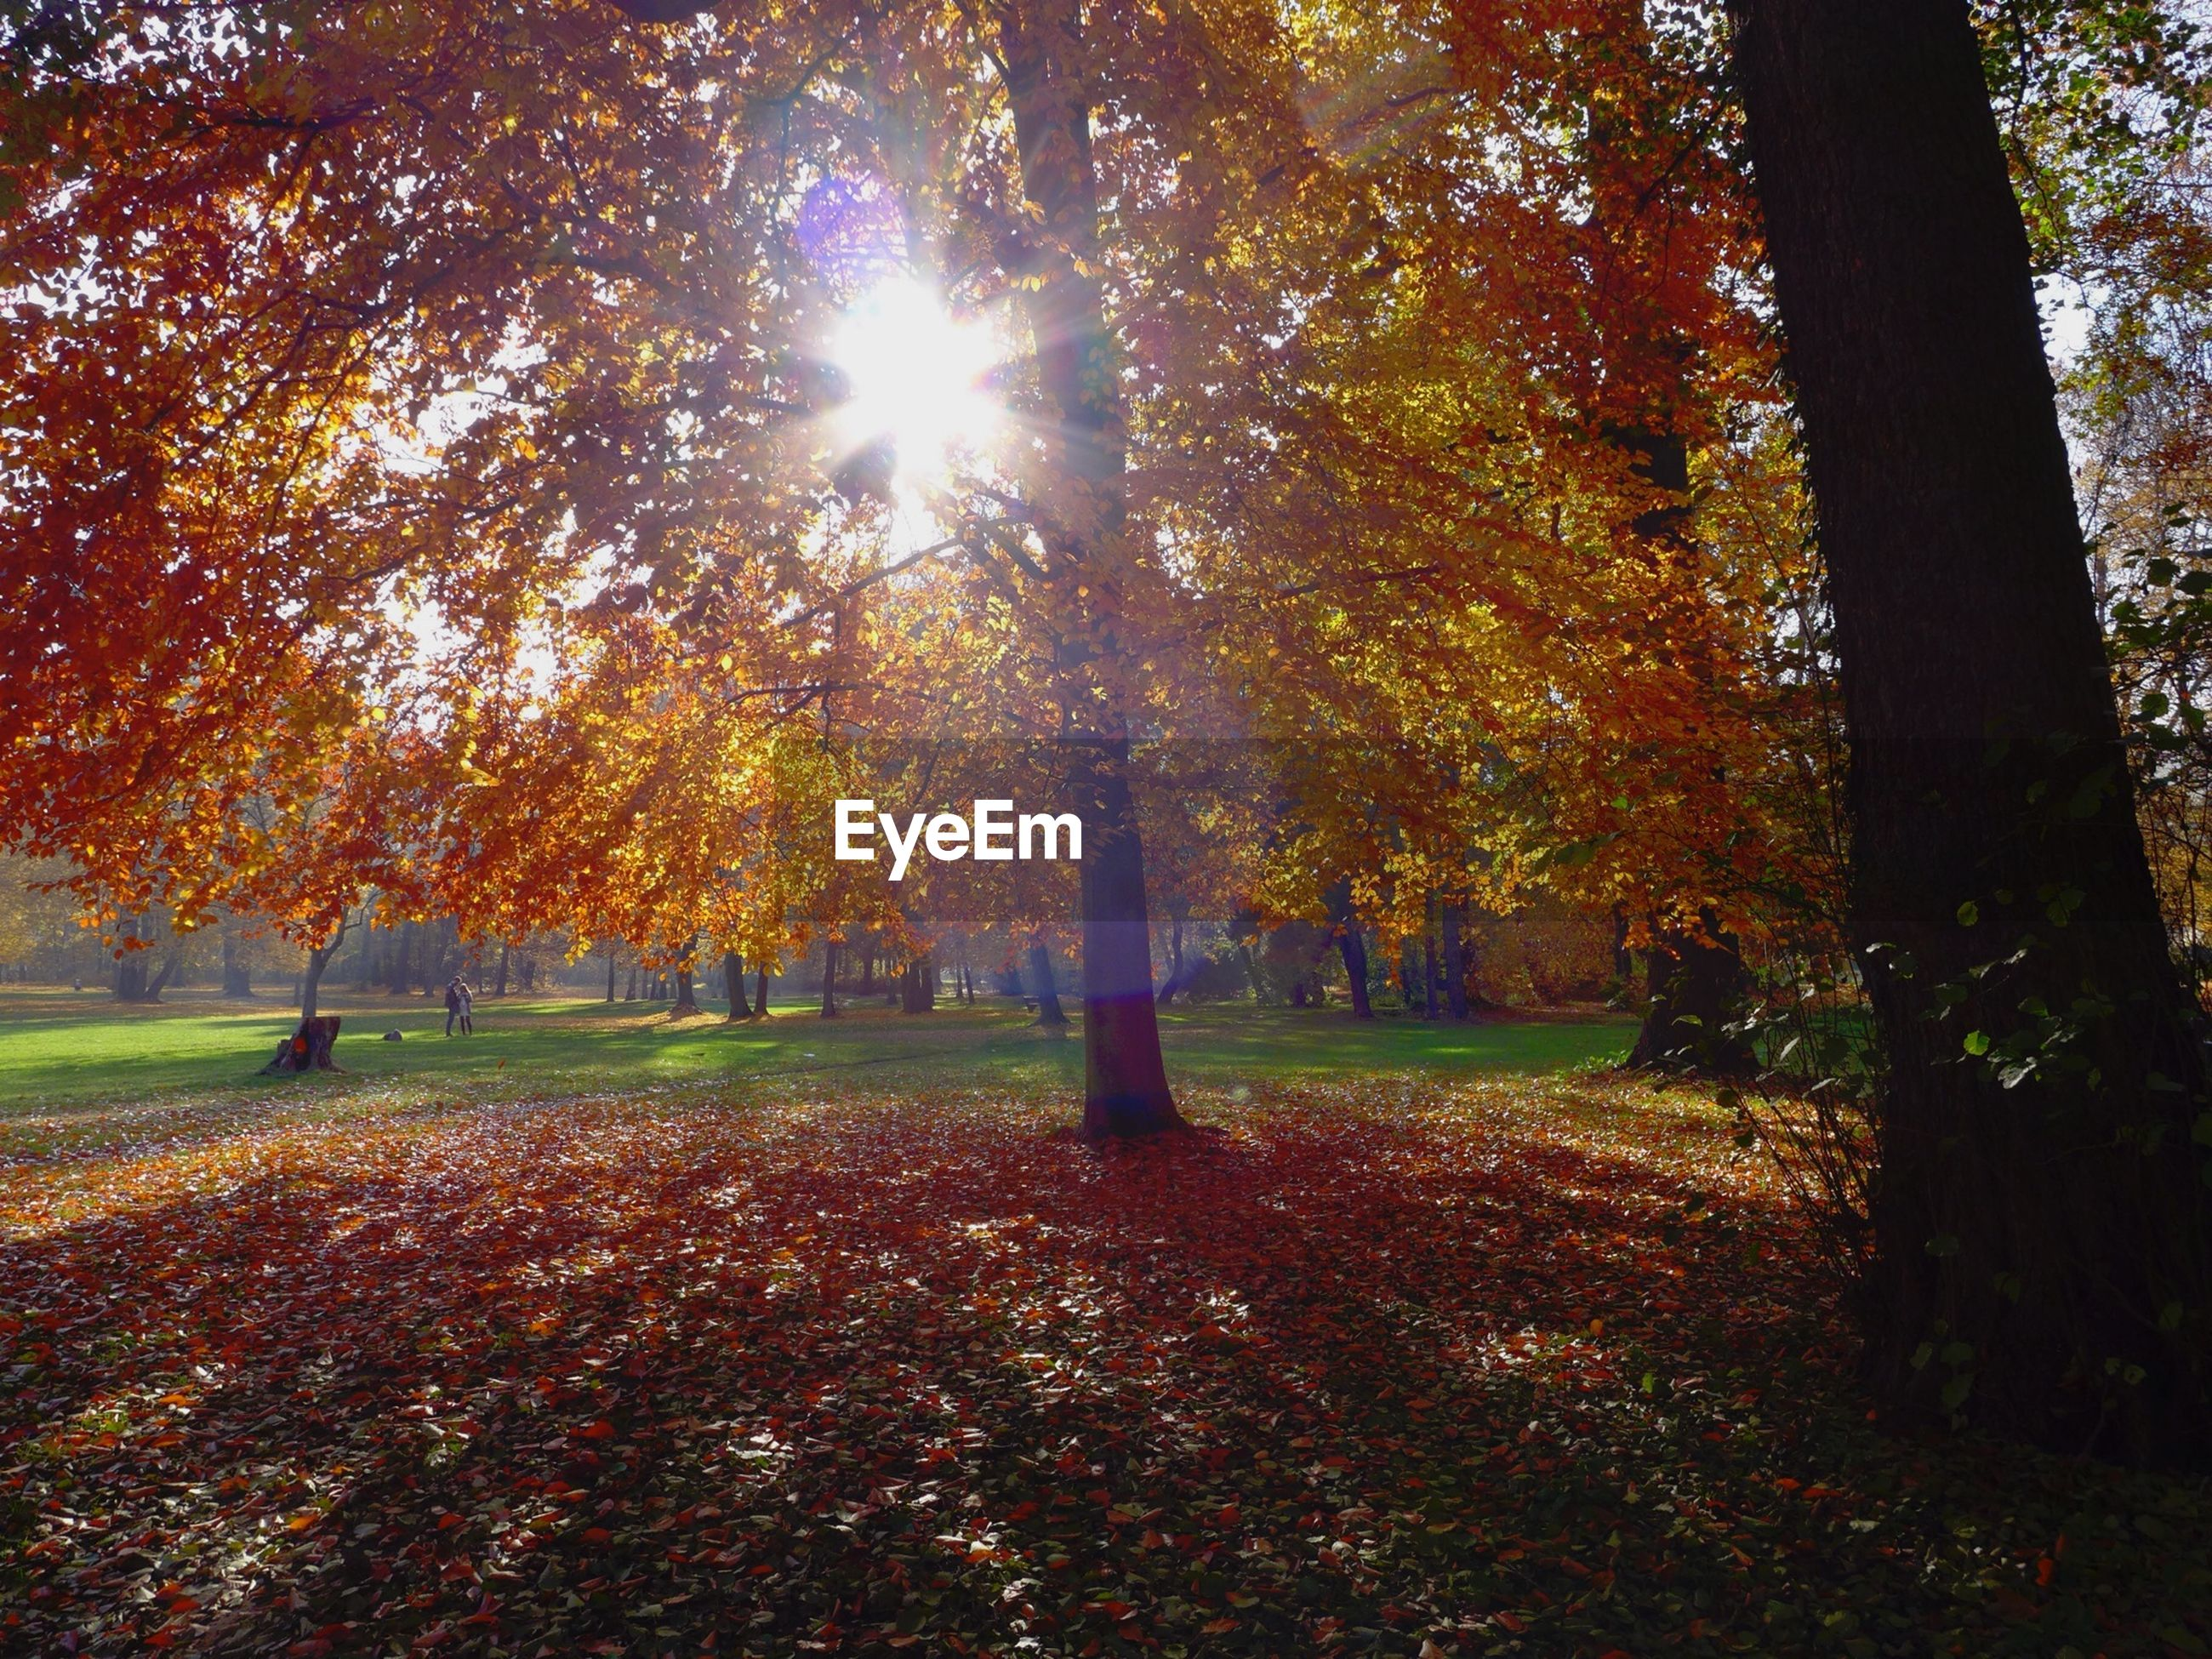 Autumn trees growing in park against bright sun